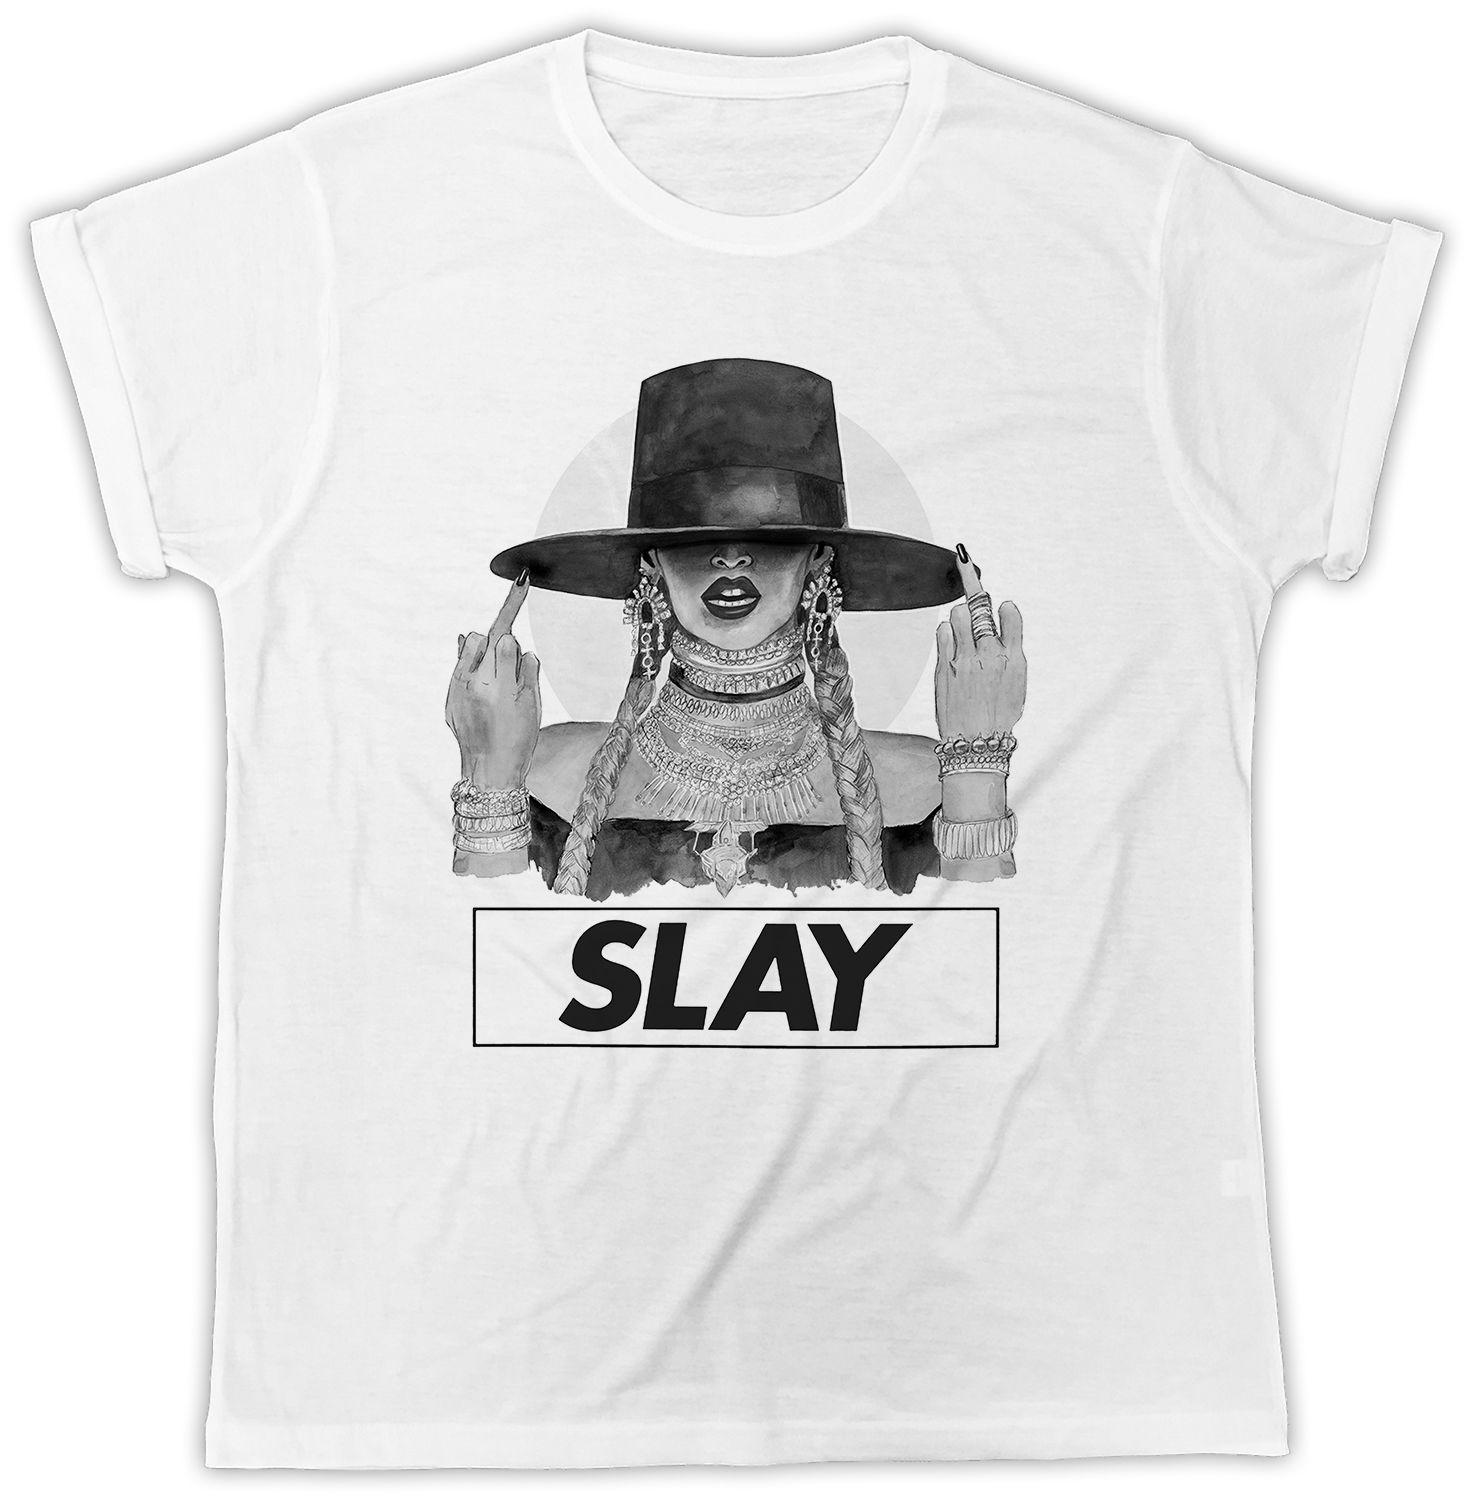 4b59da6018e1 I SLAY TSHIRT BEYONCE HAT IDEAL GIFT POSTER BIRTHDAY PRESENT FASHION  TSHIRTFunny Unisex Casual Top Crazy T Shirts For Men Cheap T Shirts For  Sale Online ...